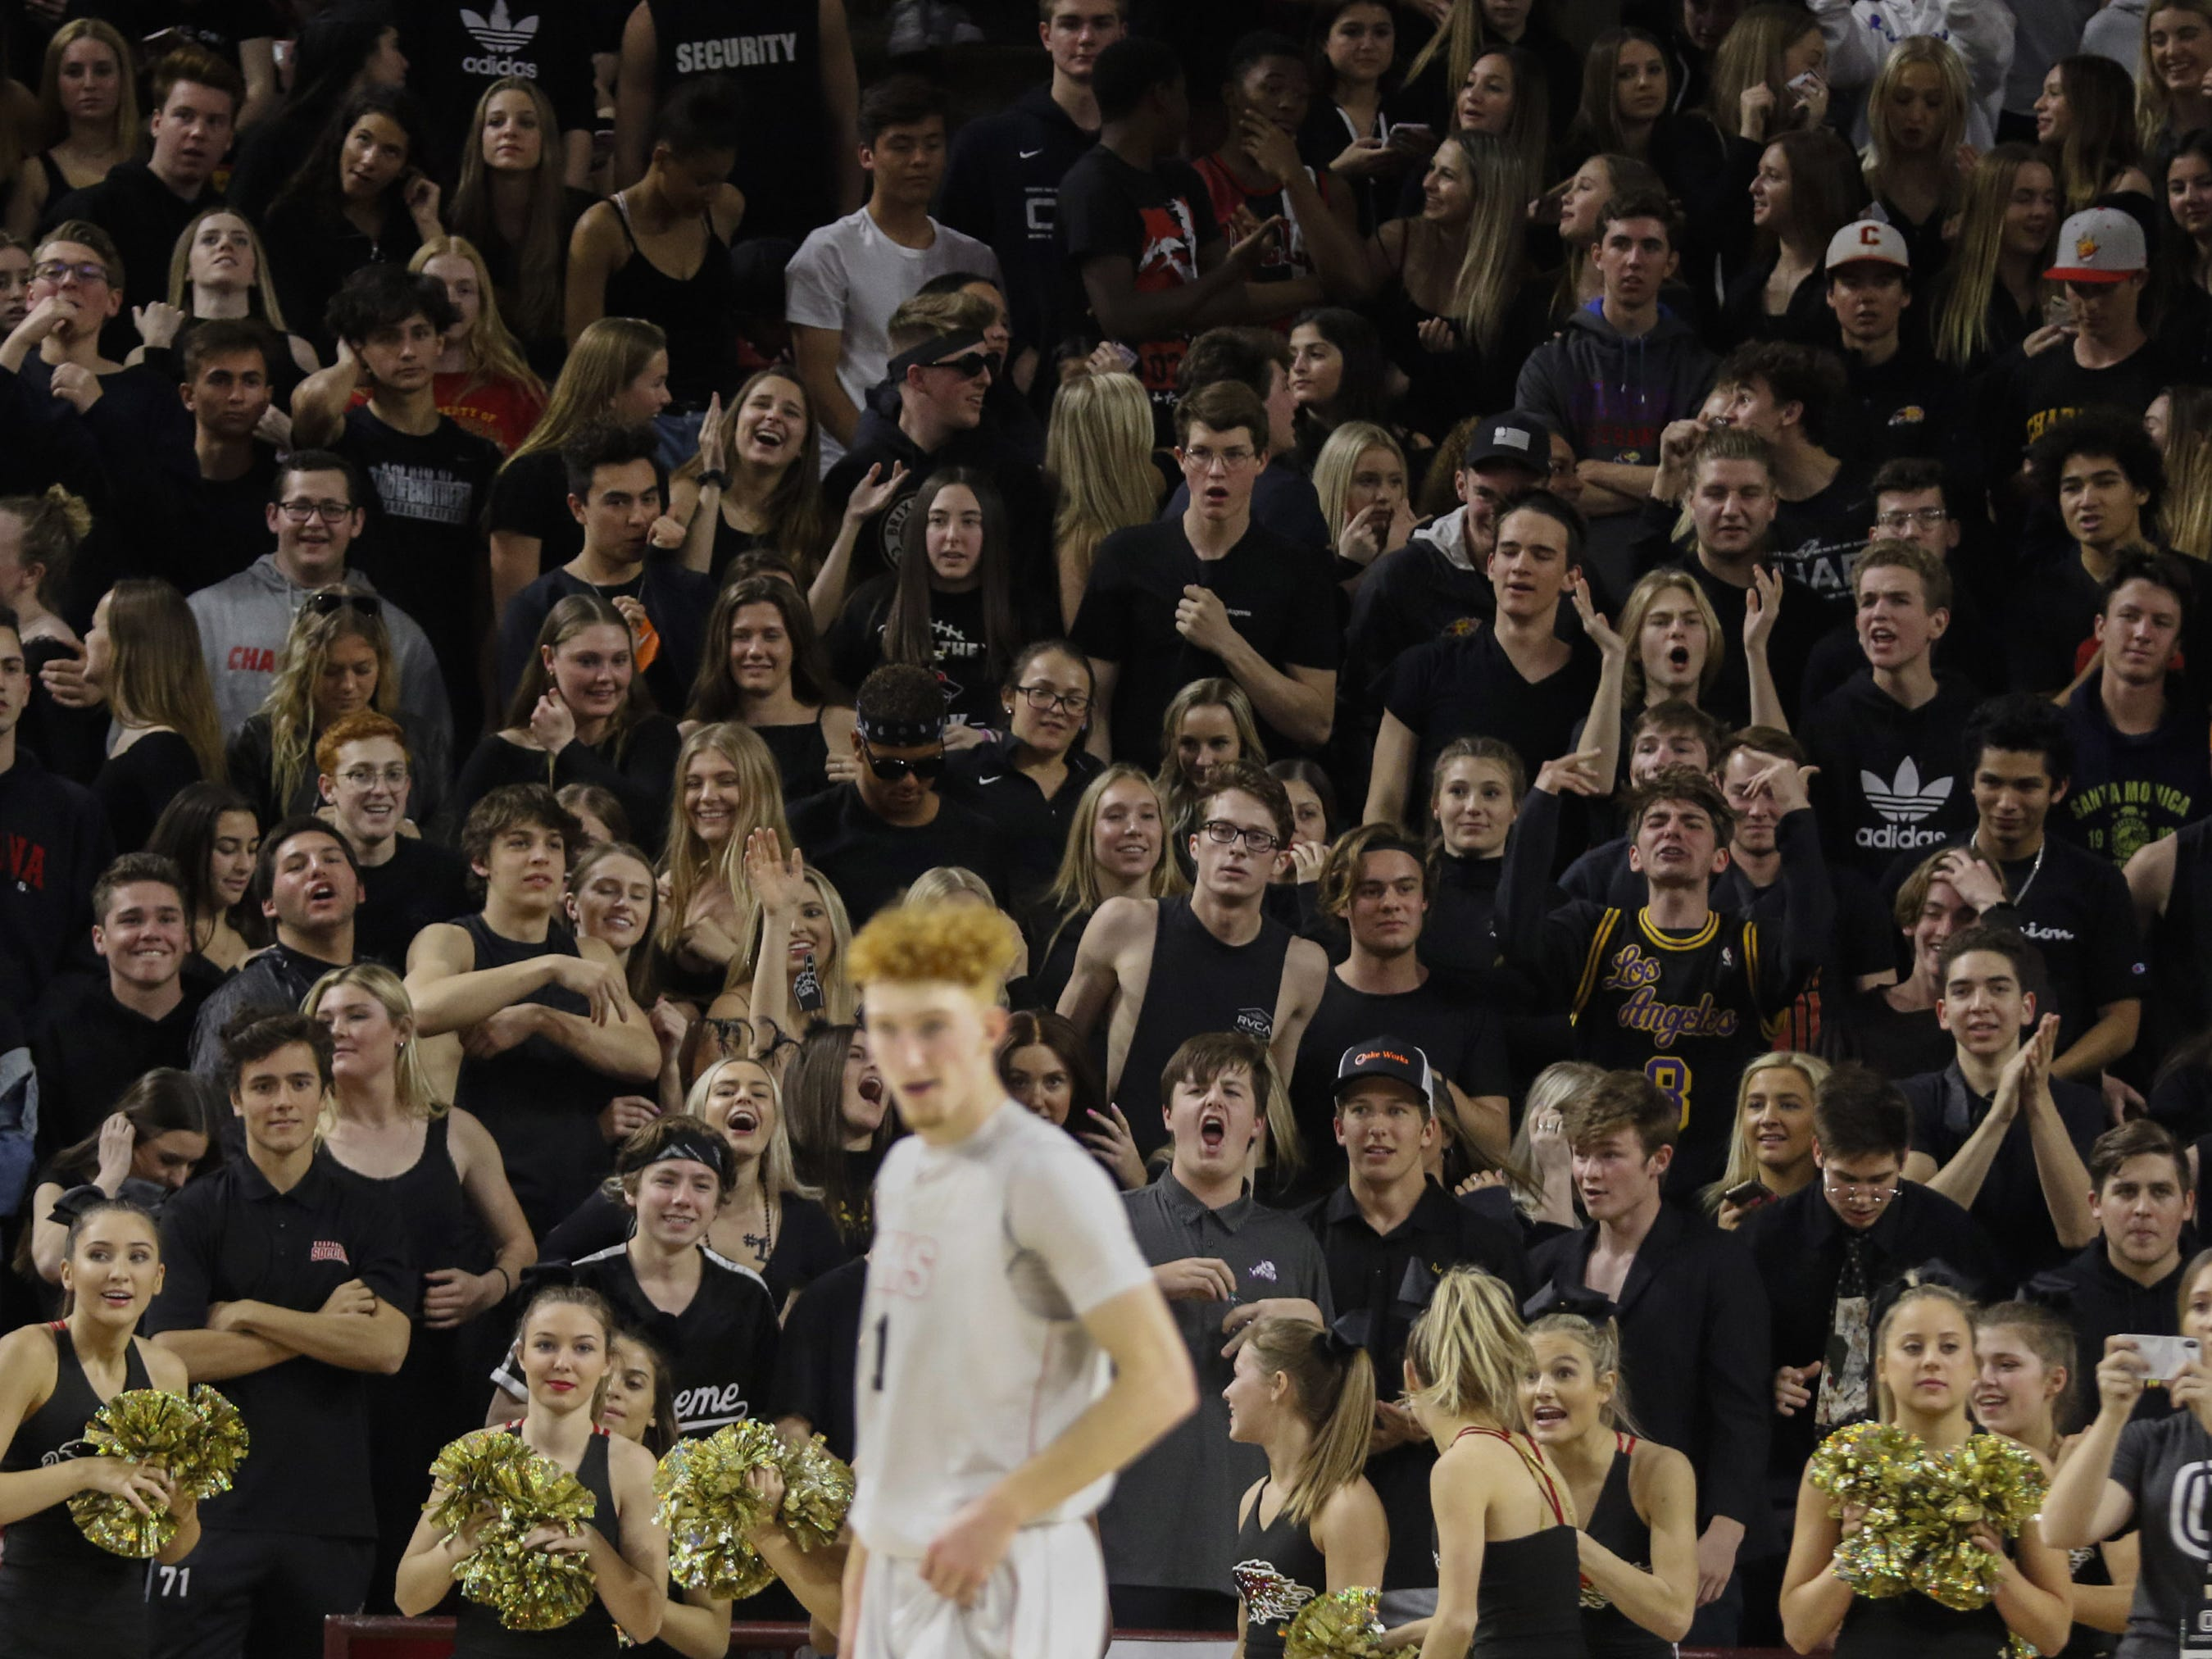 Chaparral's student body gives Pinnacle's Nico Mannion (1) a hard time during the 6A Boys State Championship at Wells Fargo Arena in Tempe Tuesday, Feb 26, 2019.